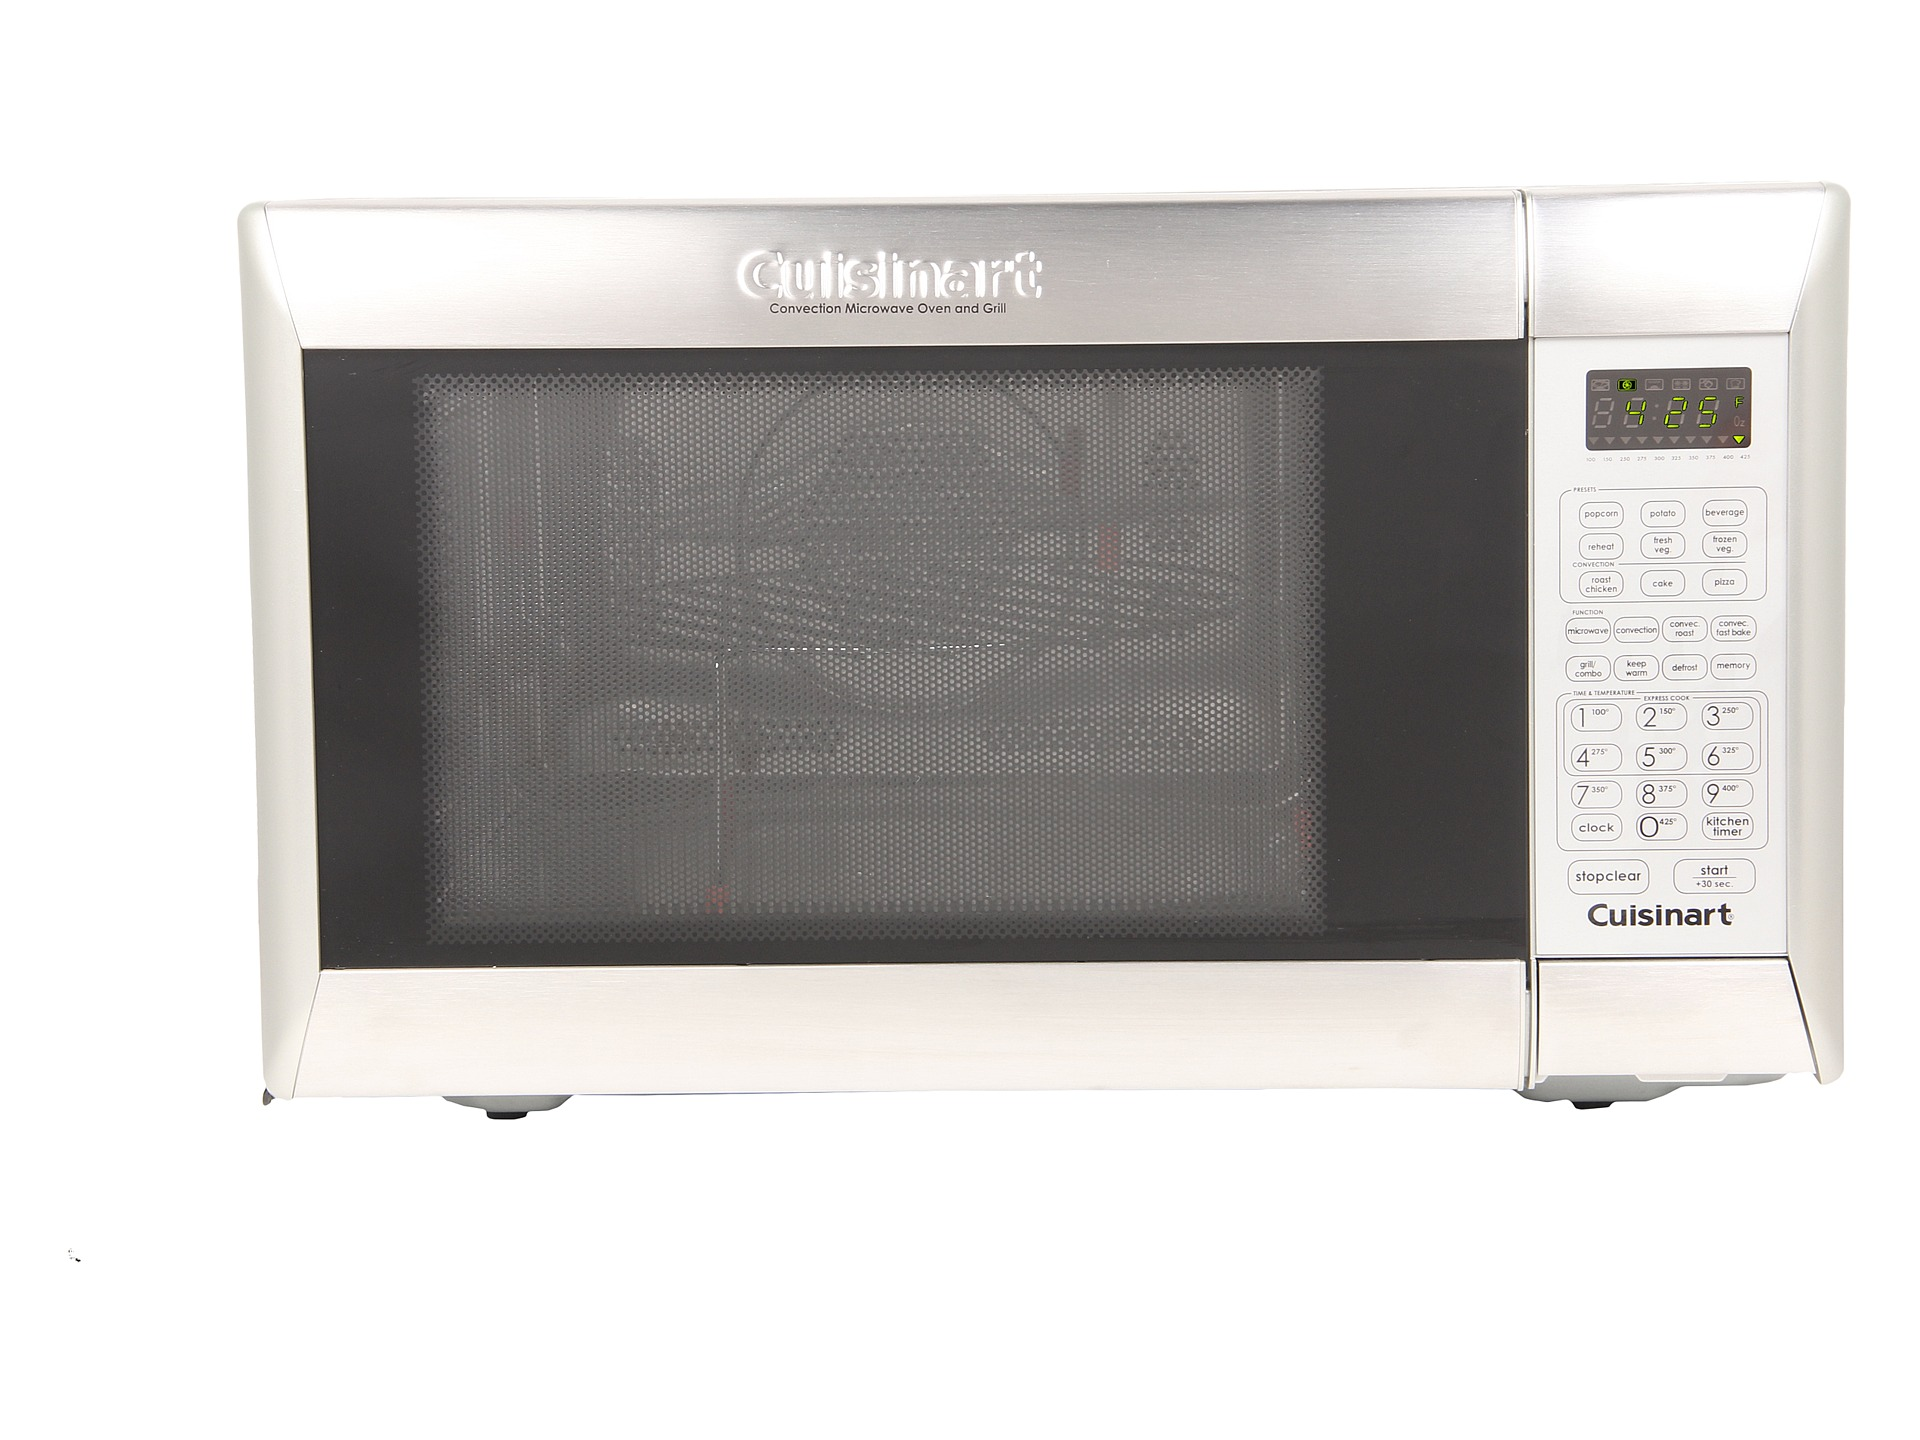 Microwave Oven Cuisinart Convection Microwave Oven And Grill